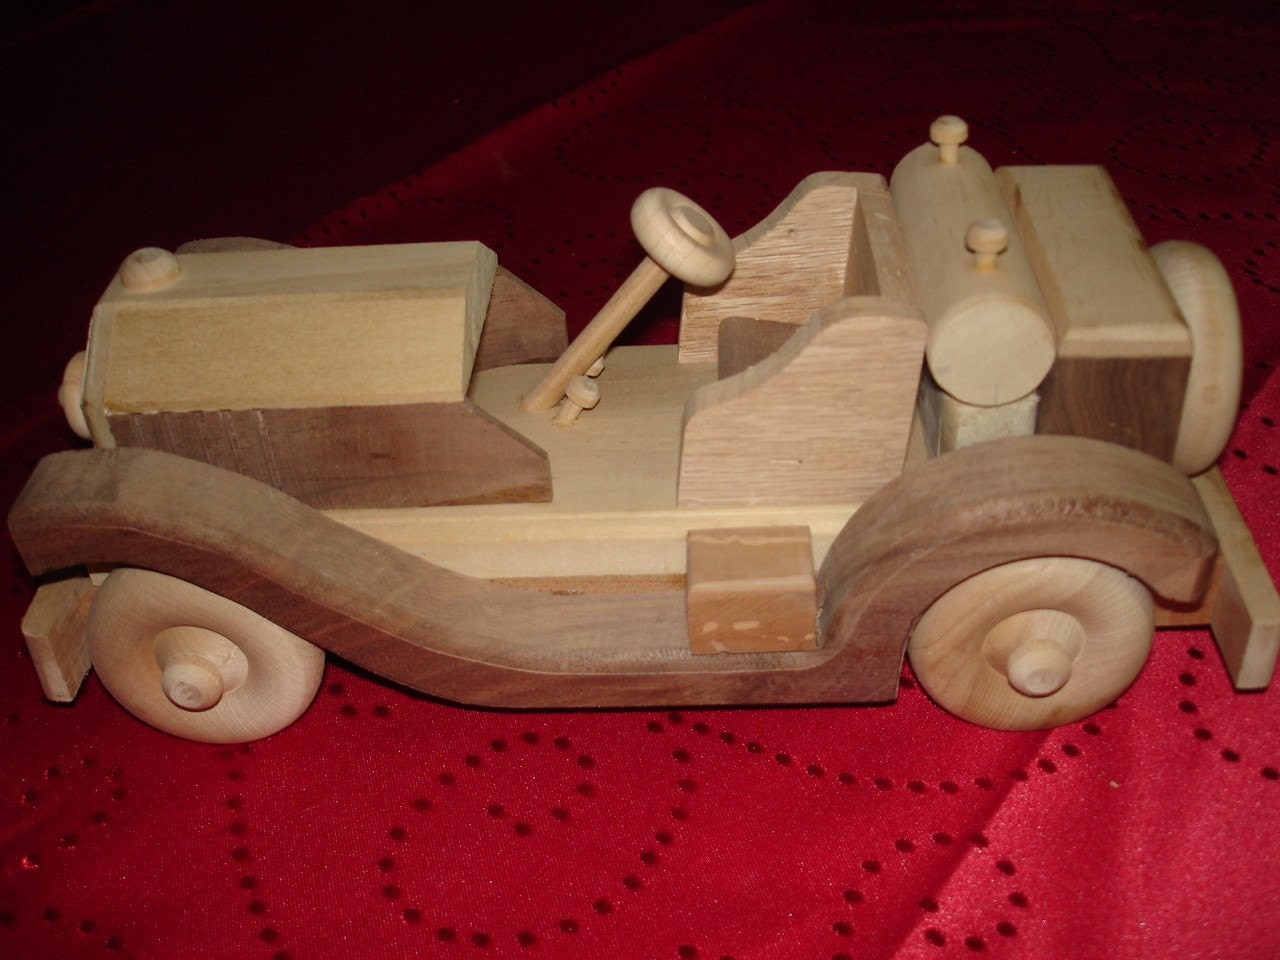 Old fashioned wooden toy plans SDBING Wooden Number Cards and Counting Rods